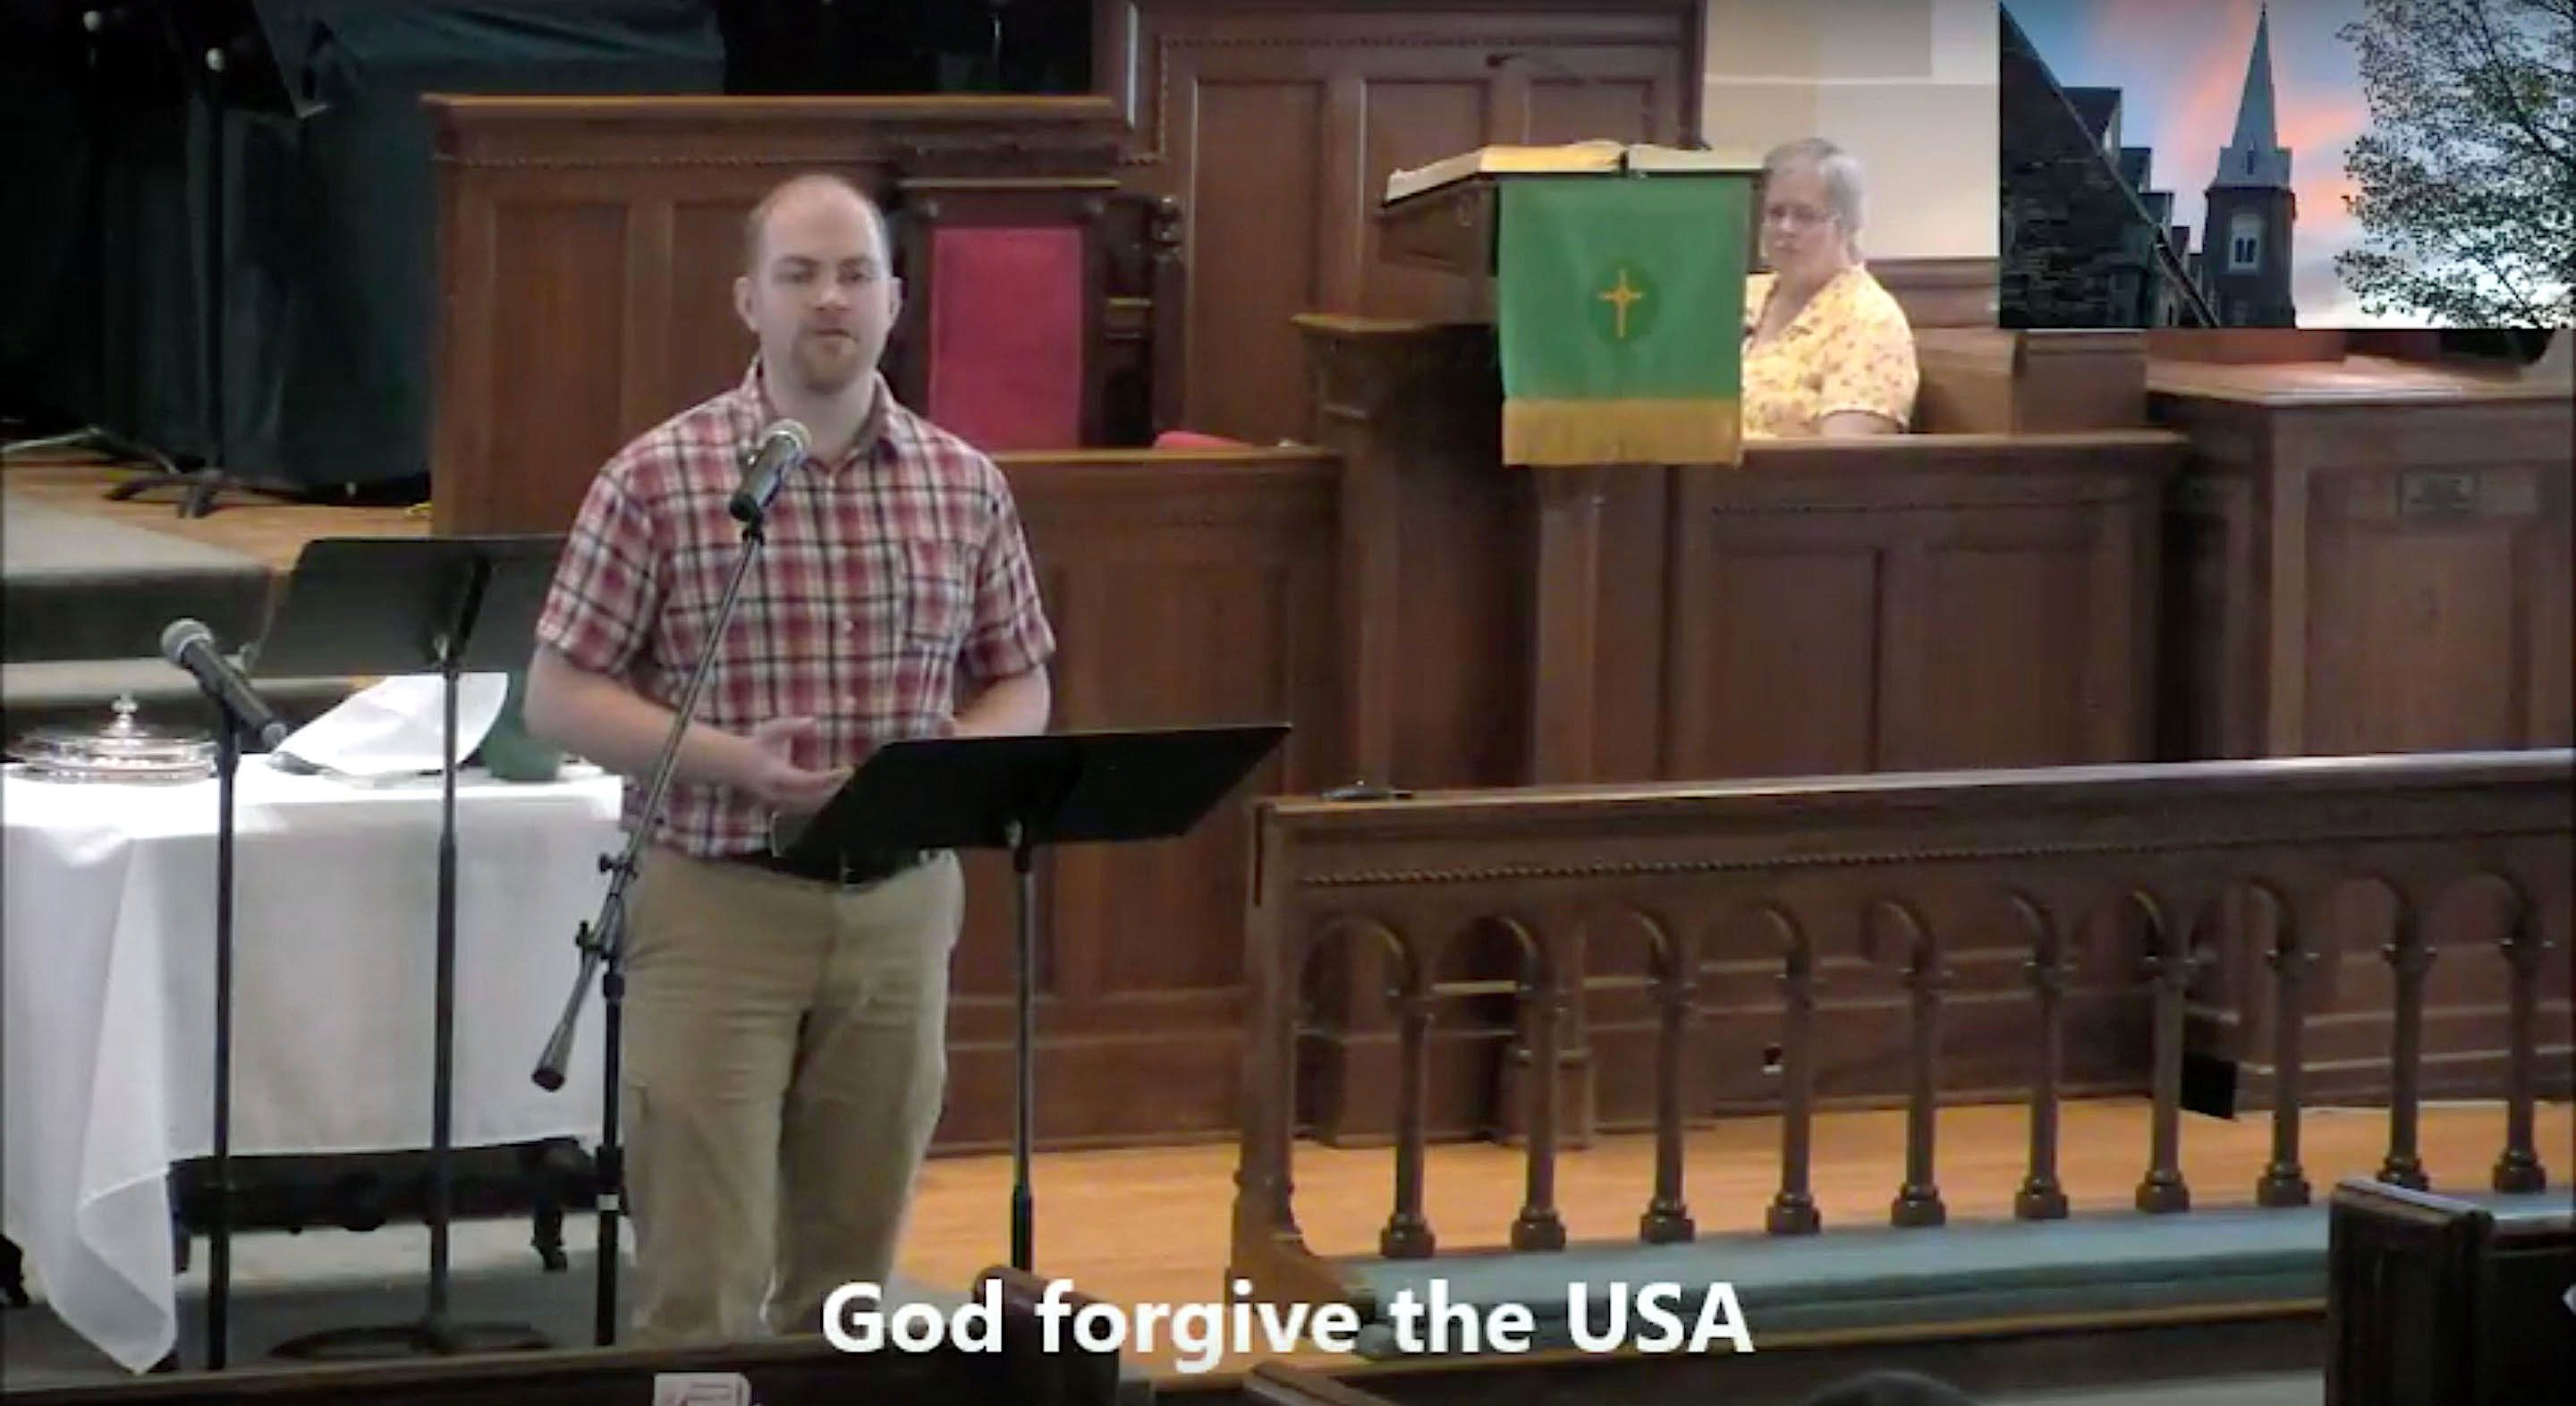 Adam Hall minister of music and media at the First United Methodist Church in Burlington Vermont rewrote the lyrics to God Bless the USA